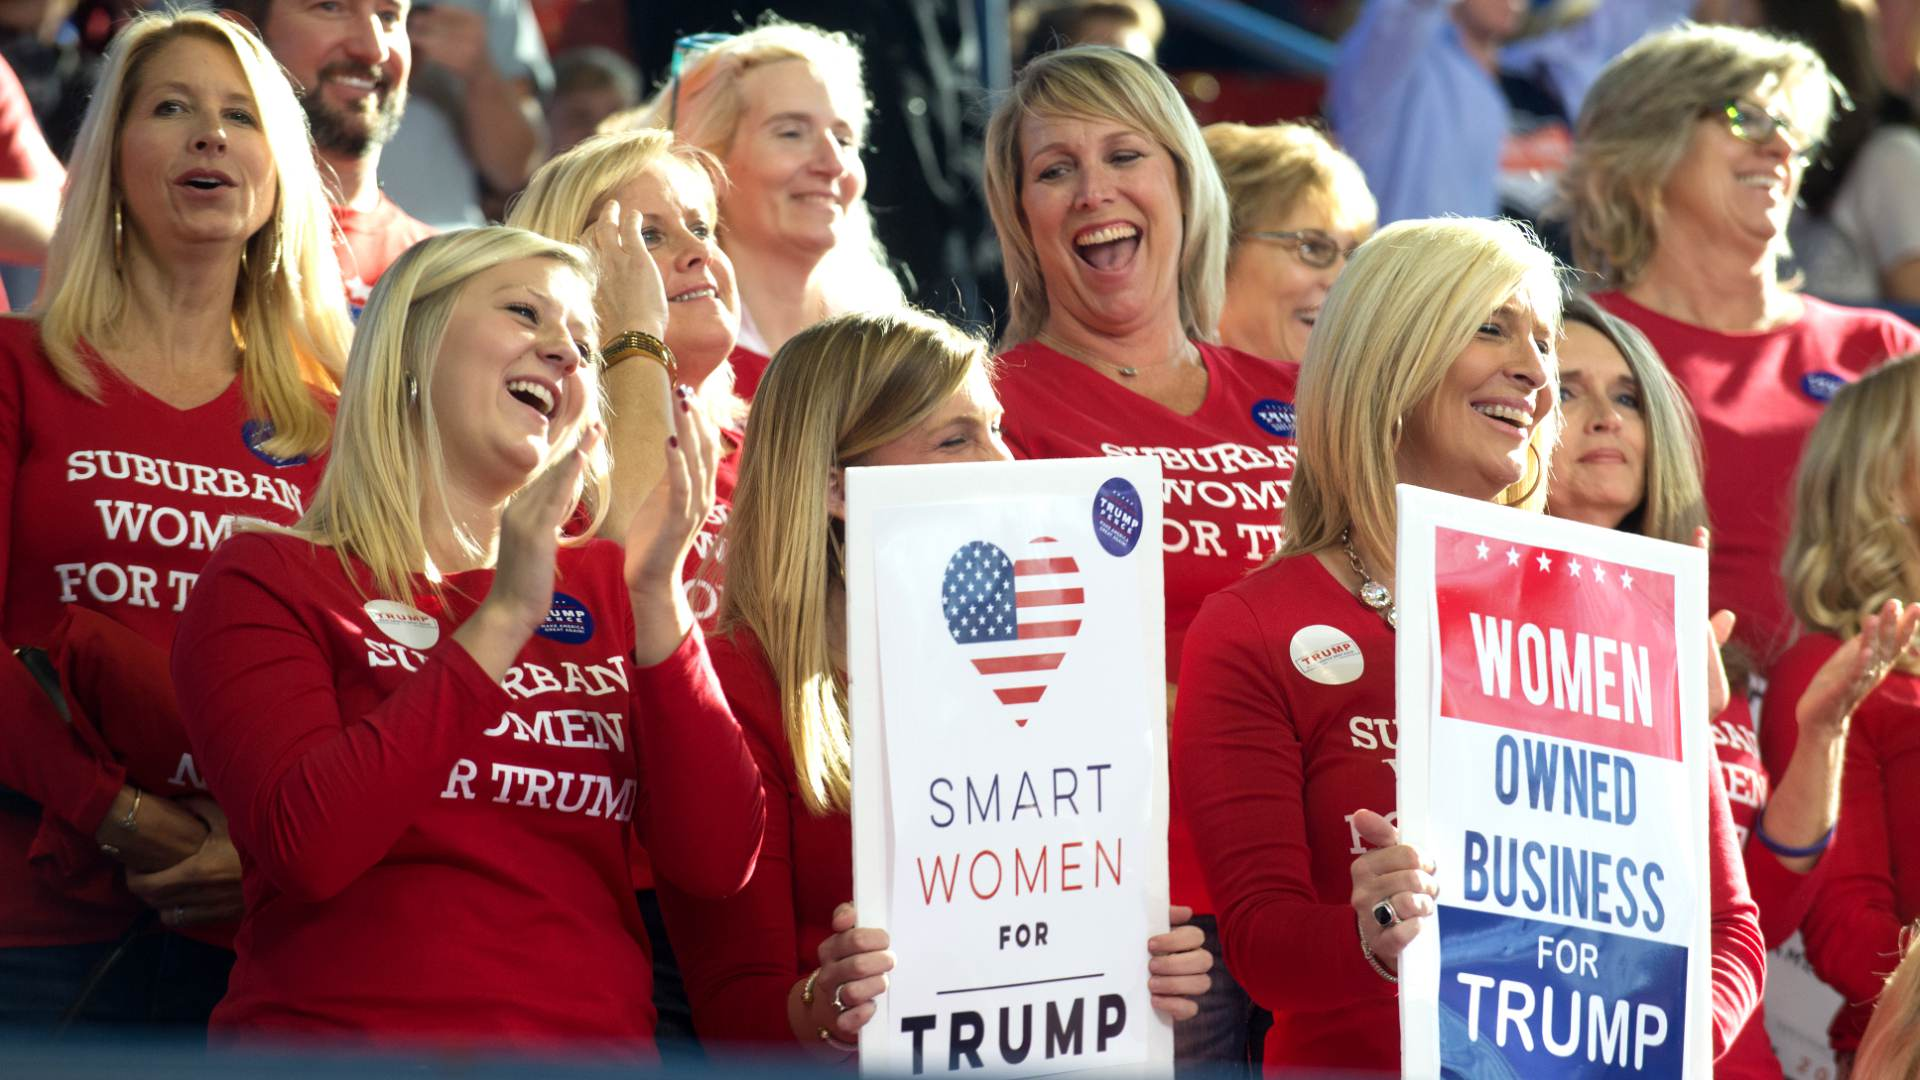 An image of a dozen or more Women Trump supporters they all have a red t-shirt on that says suburban women for Trump. They are at a rally and they look very happy clapping their hands and yelling